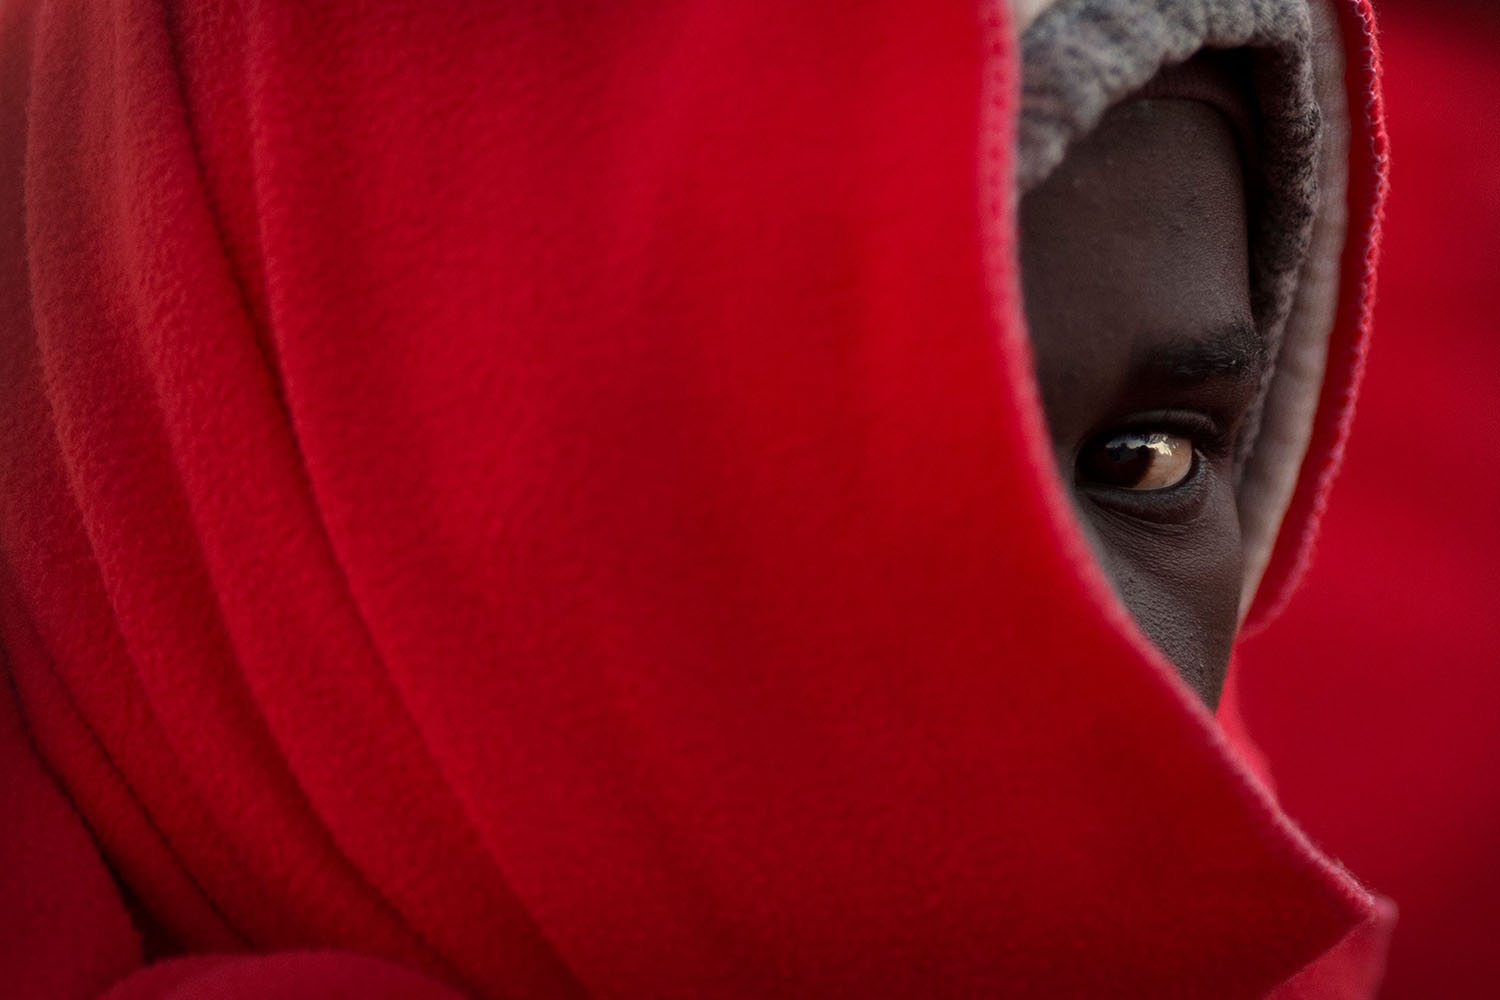 A migrant keeps warm with a Red Cross blanket upon arrival at the harbor of Malaga on Jan. 6 after an inflatable boat carrying 185 migrants was rescued by the Spanish coast guard off the Spanish coast. JORGE GUERRERO/AFP/Getty Images